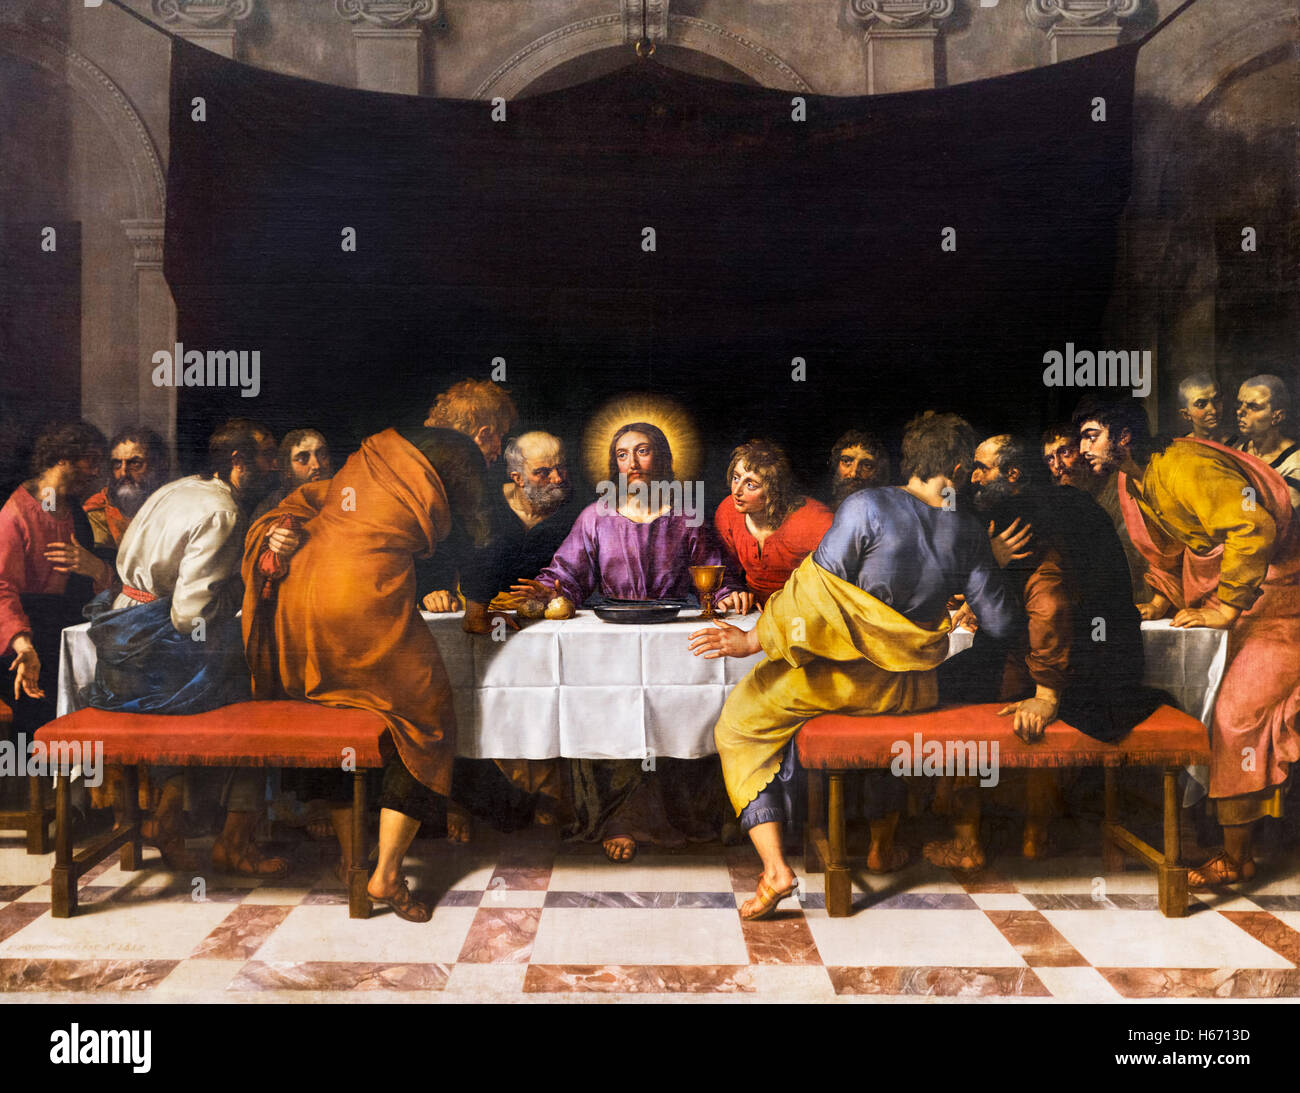 the last supper of jesus christ with his disciples by frans